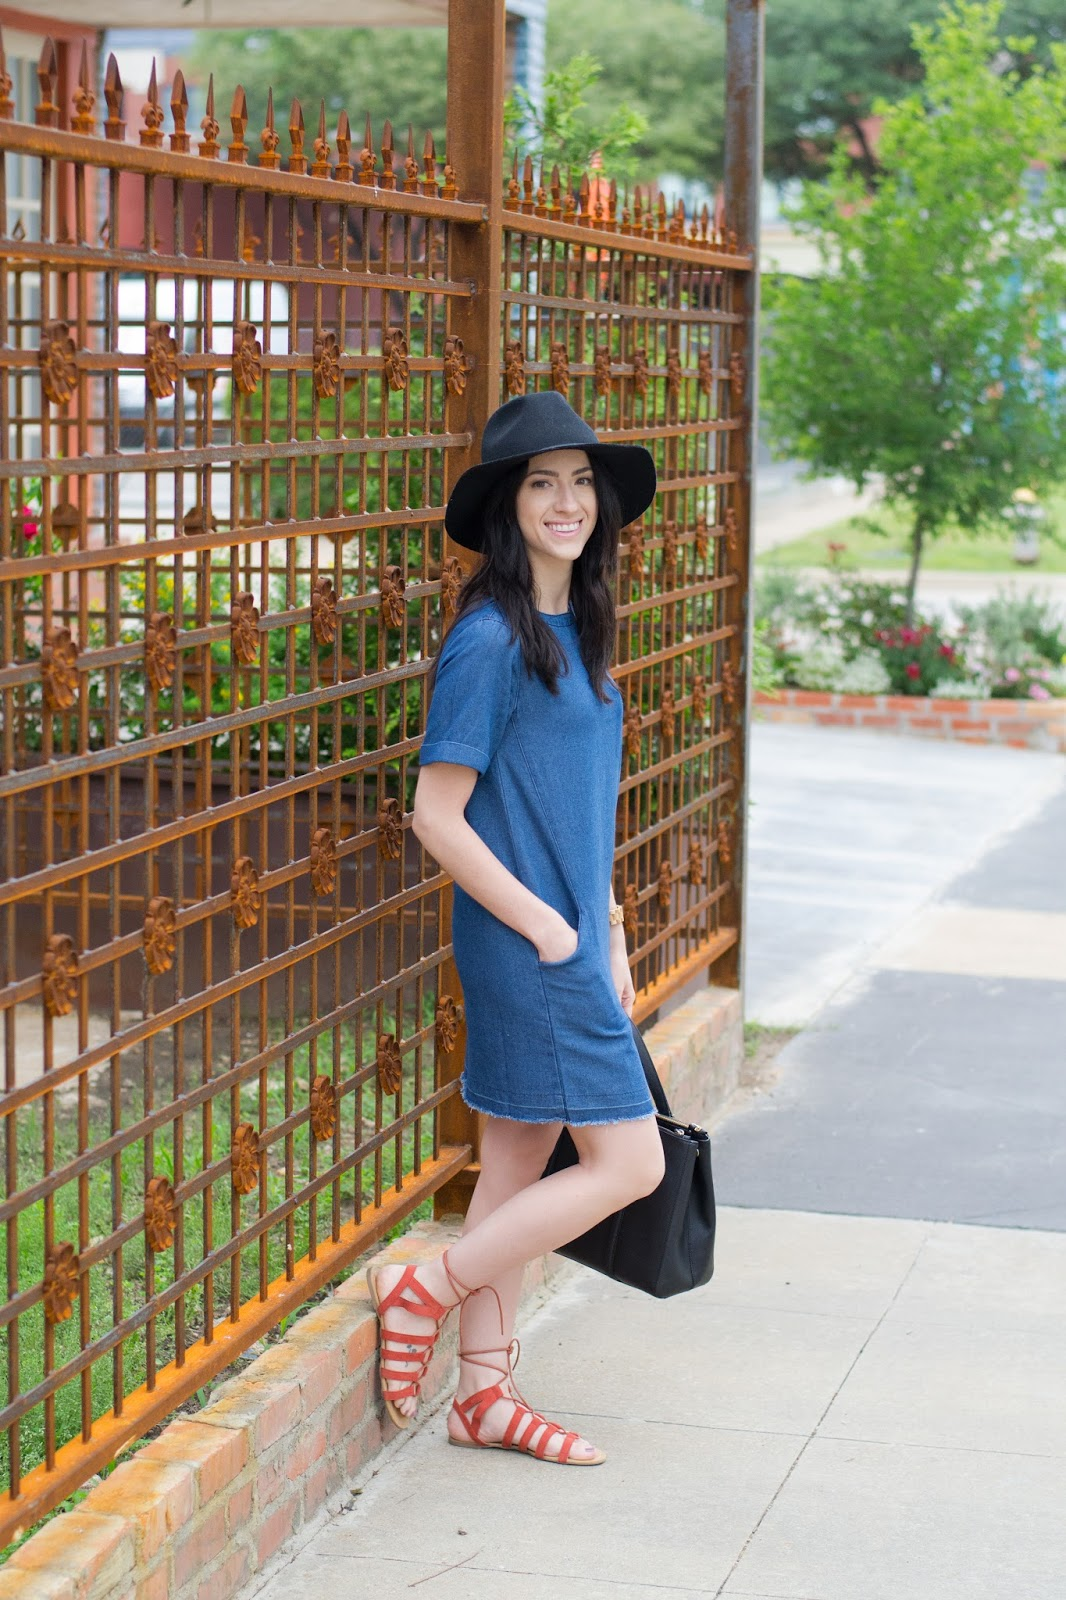 Casual weekend look wearing a simple denim dress and lace up sandals